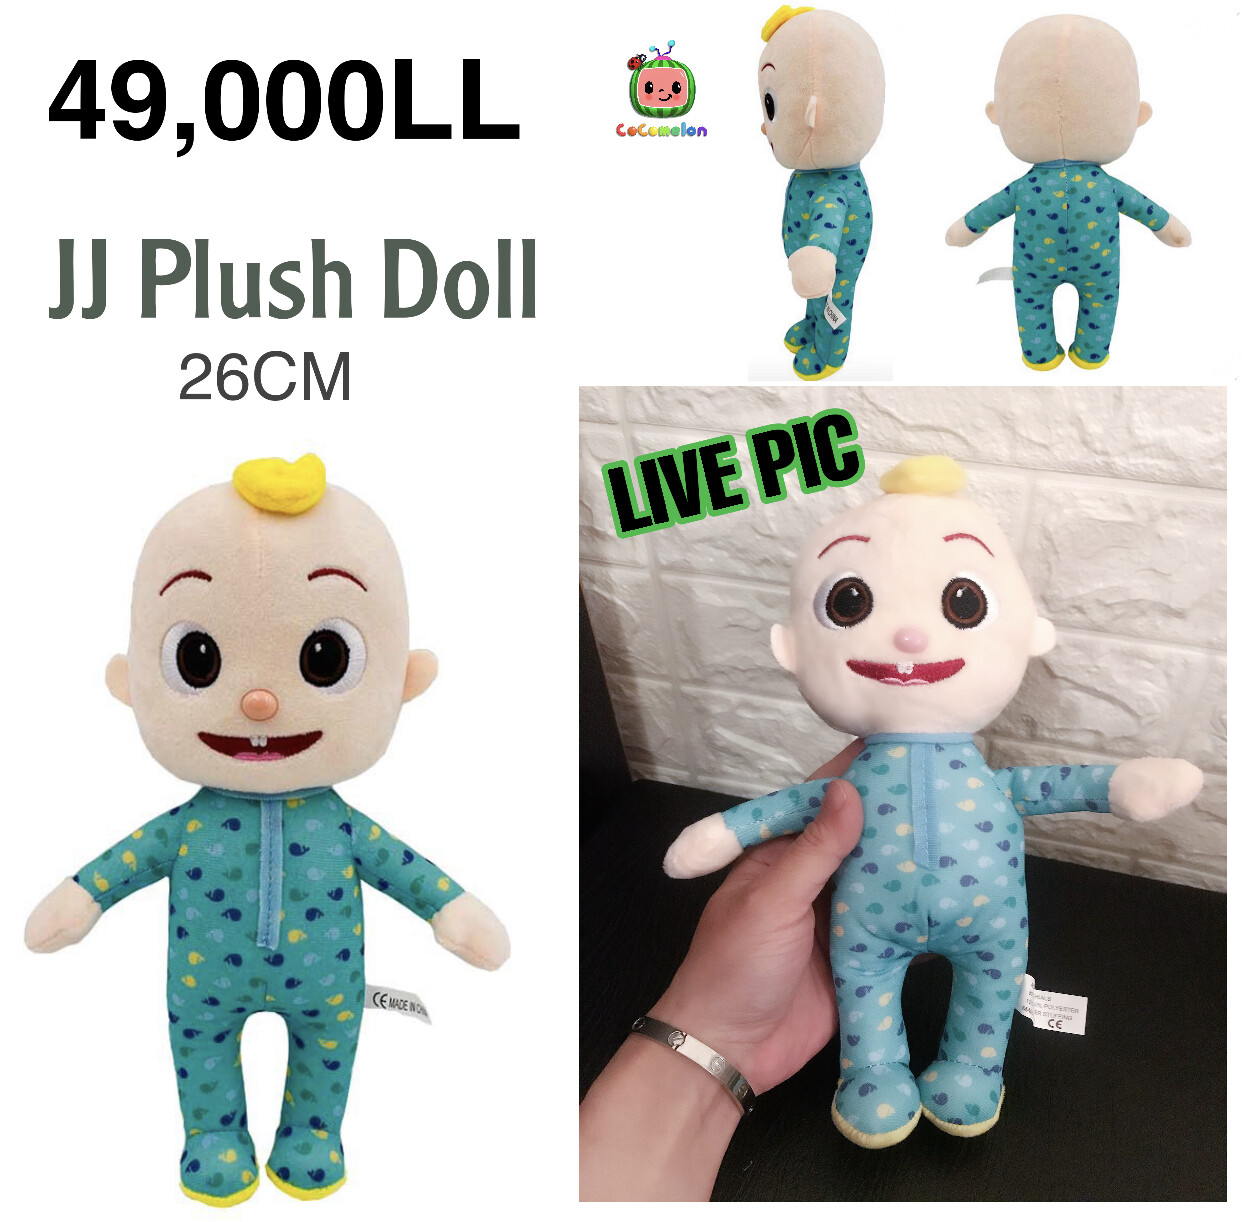 JJ Plush Doll